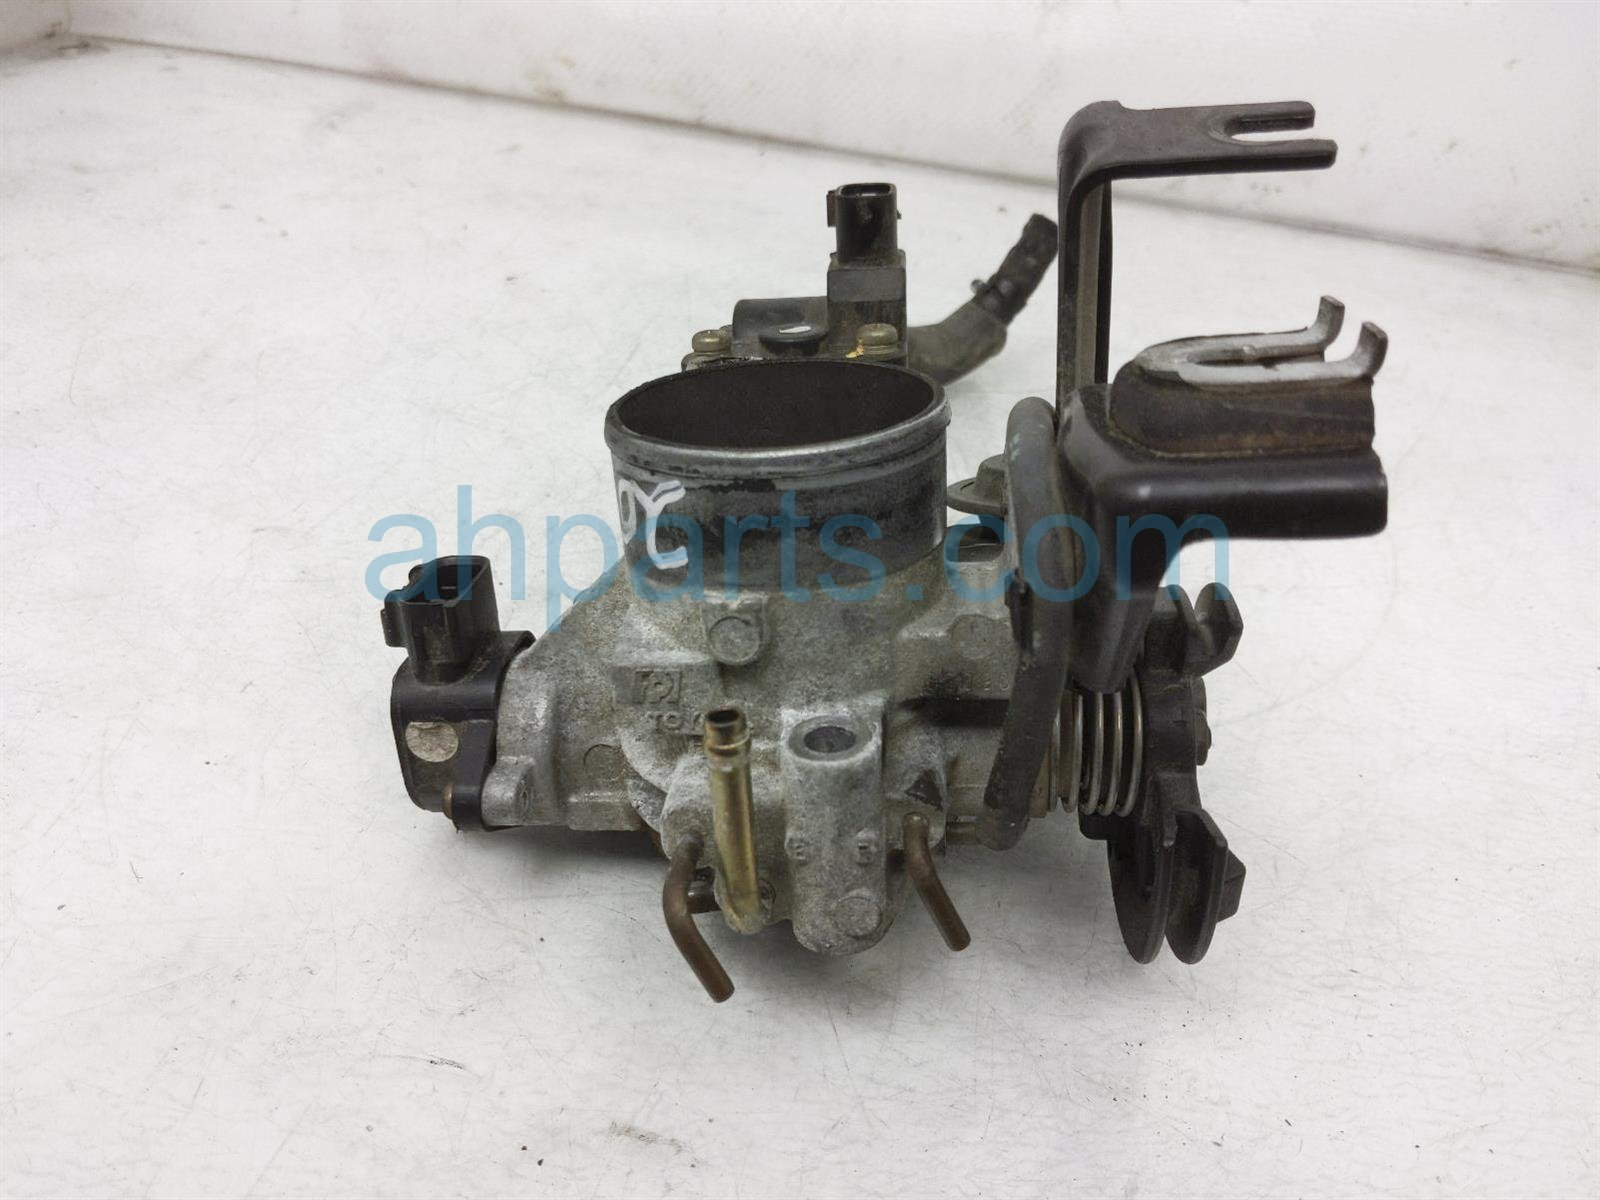 2001 Toyota Camry Throttle Body 22210 03090 Replacement